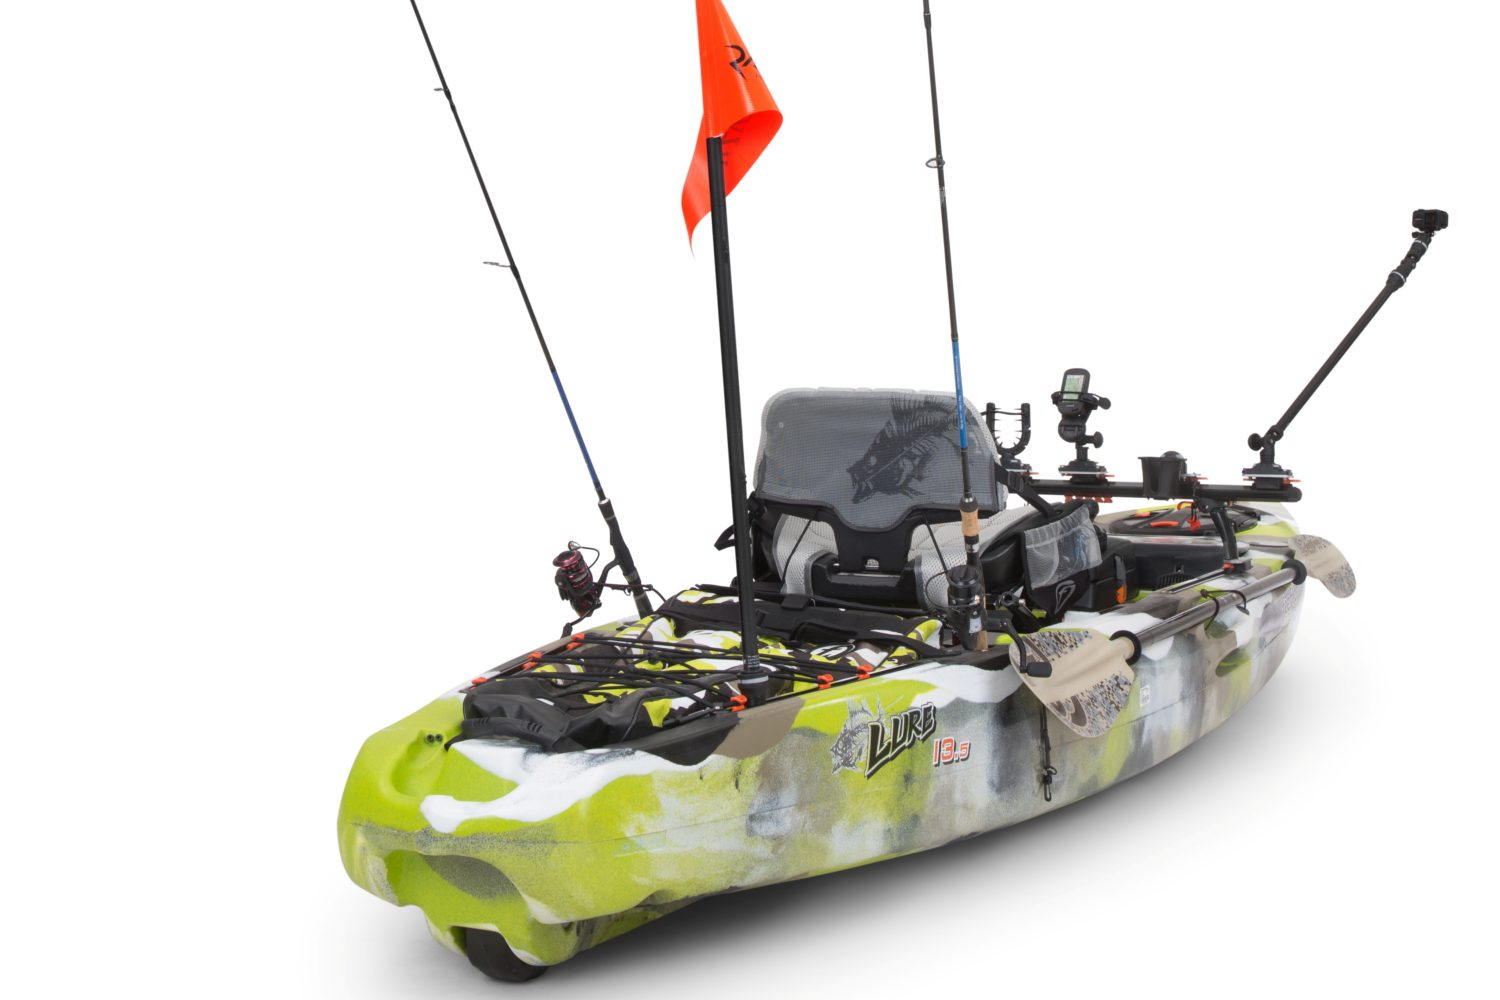 Feelfree Lure 11 5 Review An Innovative Fishing Kayak That Has It All